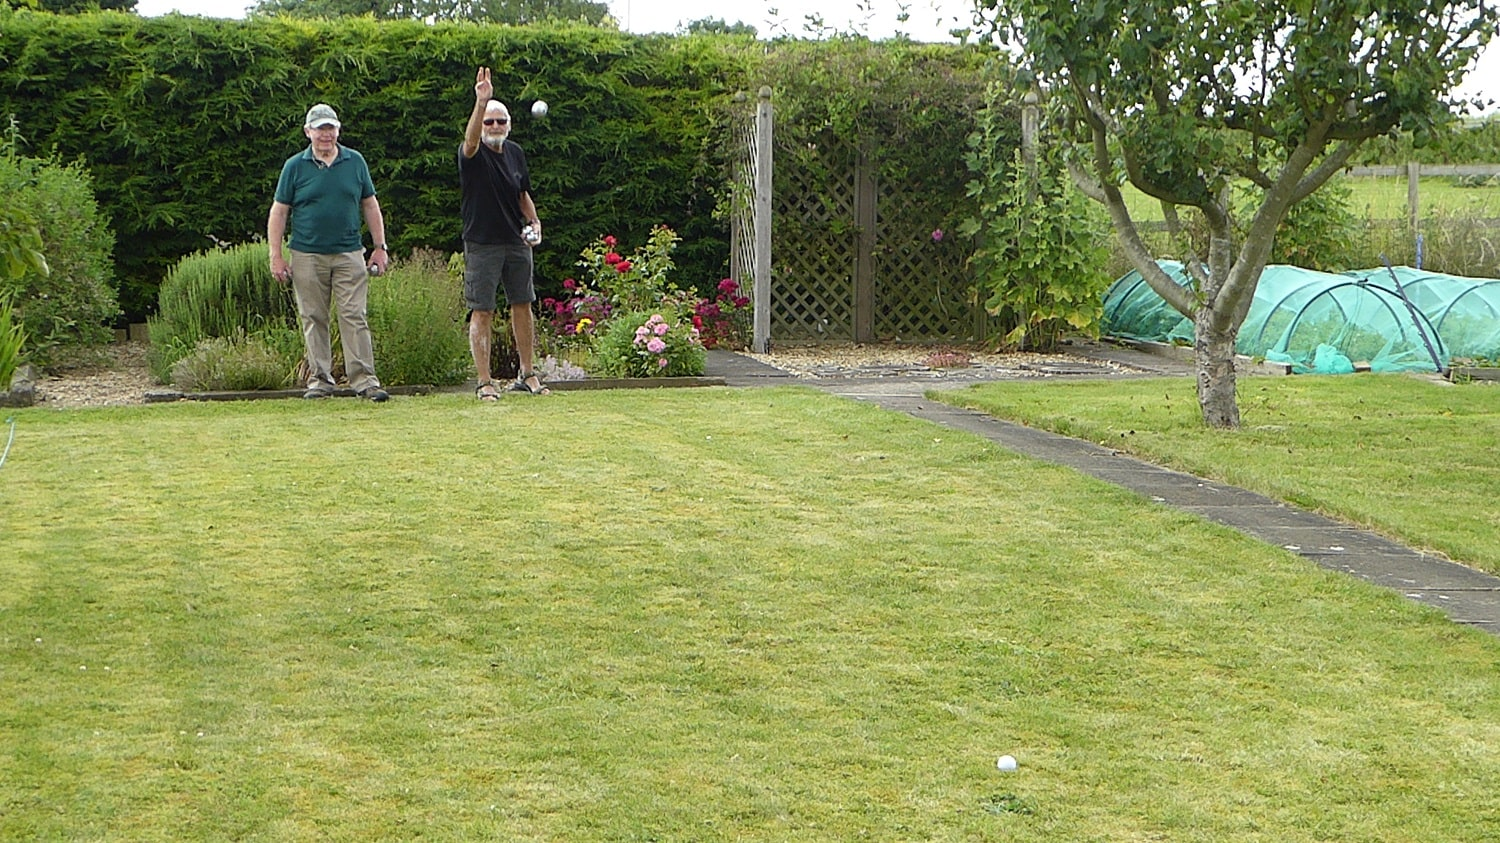 The Final of the Boules Contest